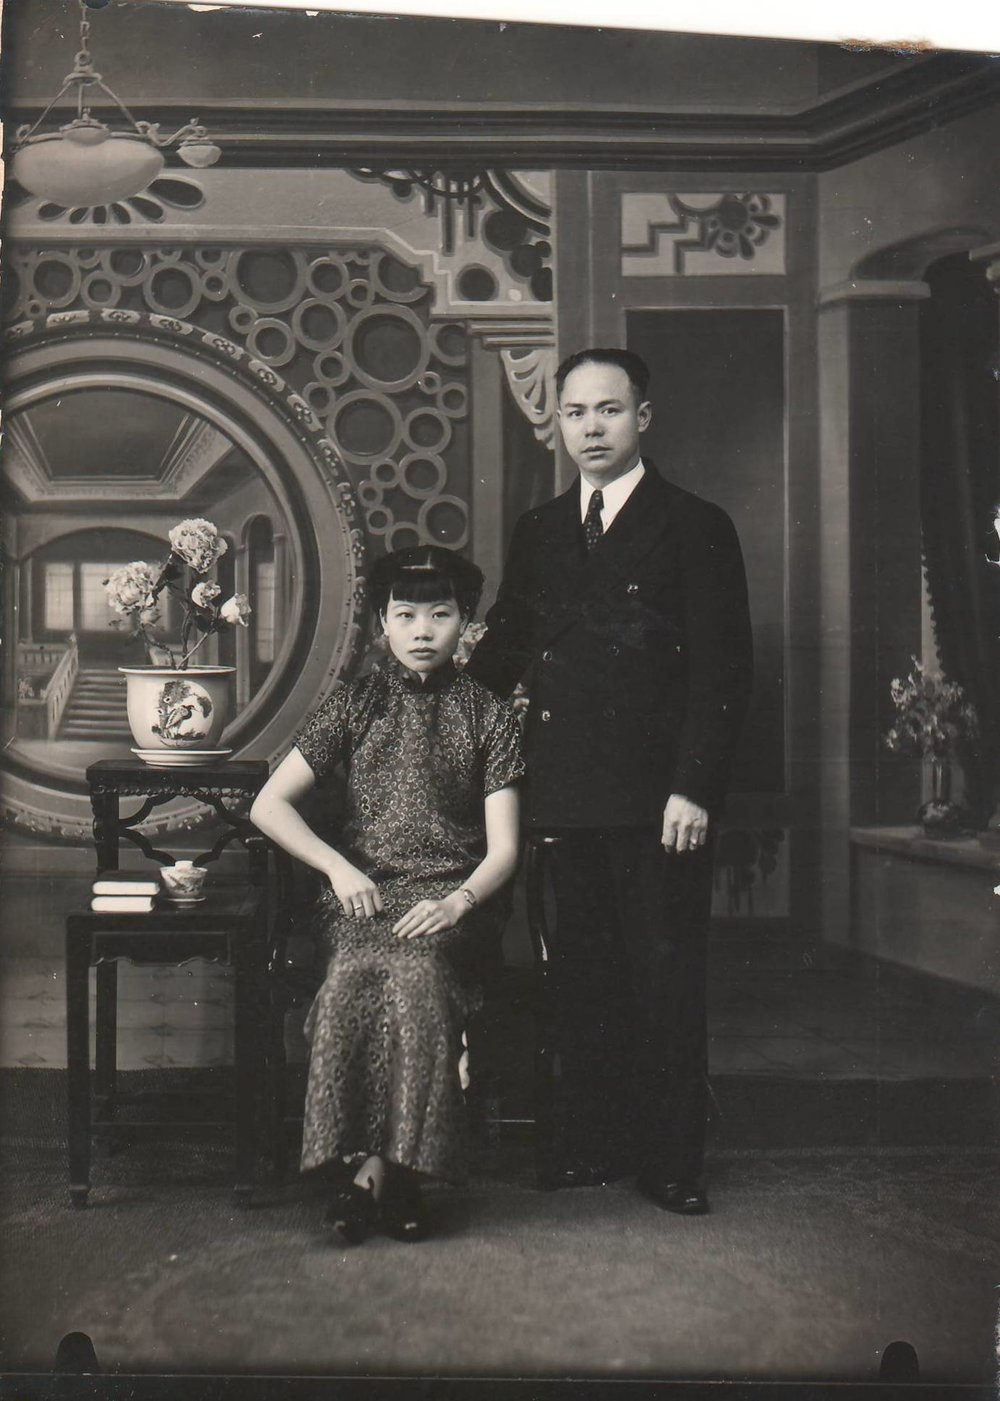 Harry Fong and Alice Fong - wedding photo. Courtesy Katheryn Fong